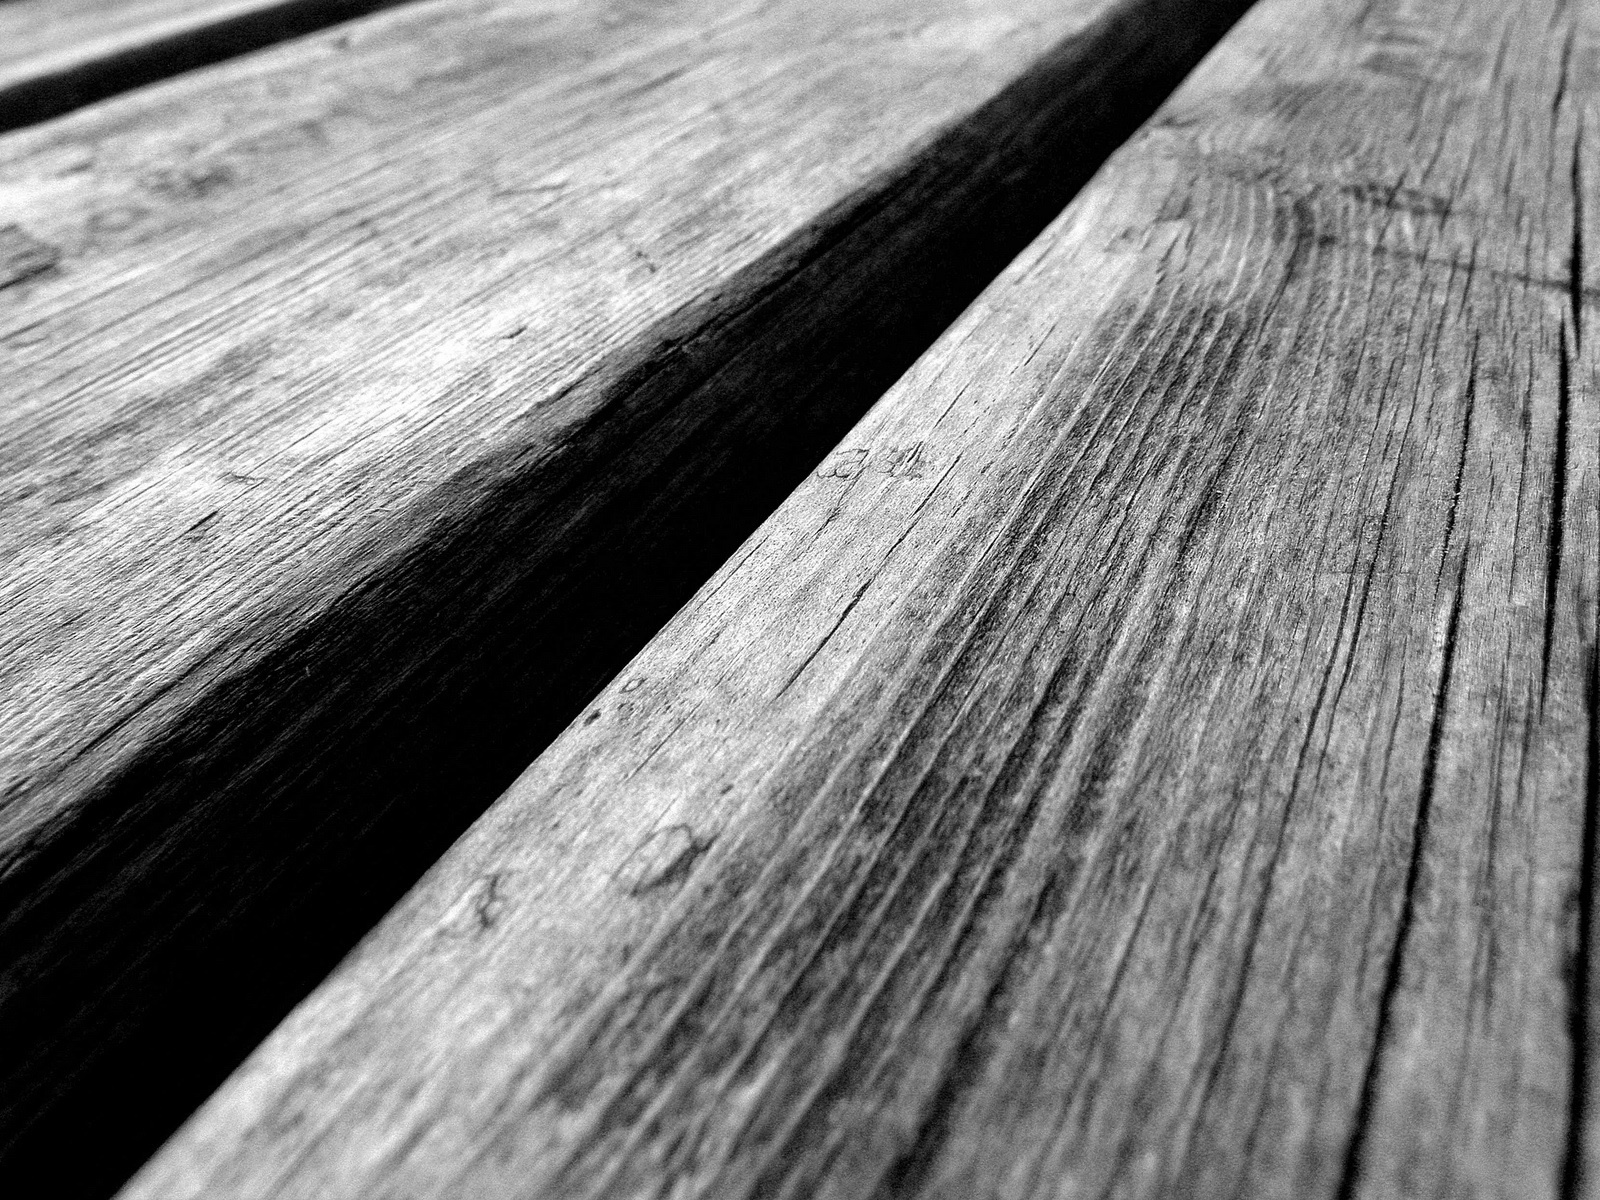 Wood texture close-up 1600x1200 wallpaper